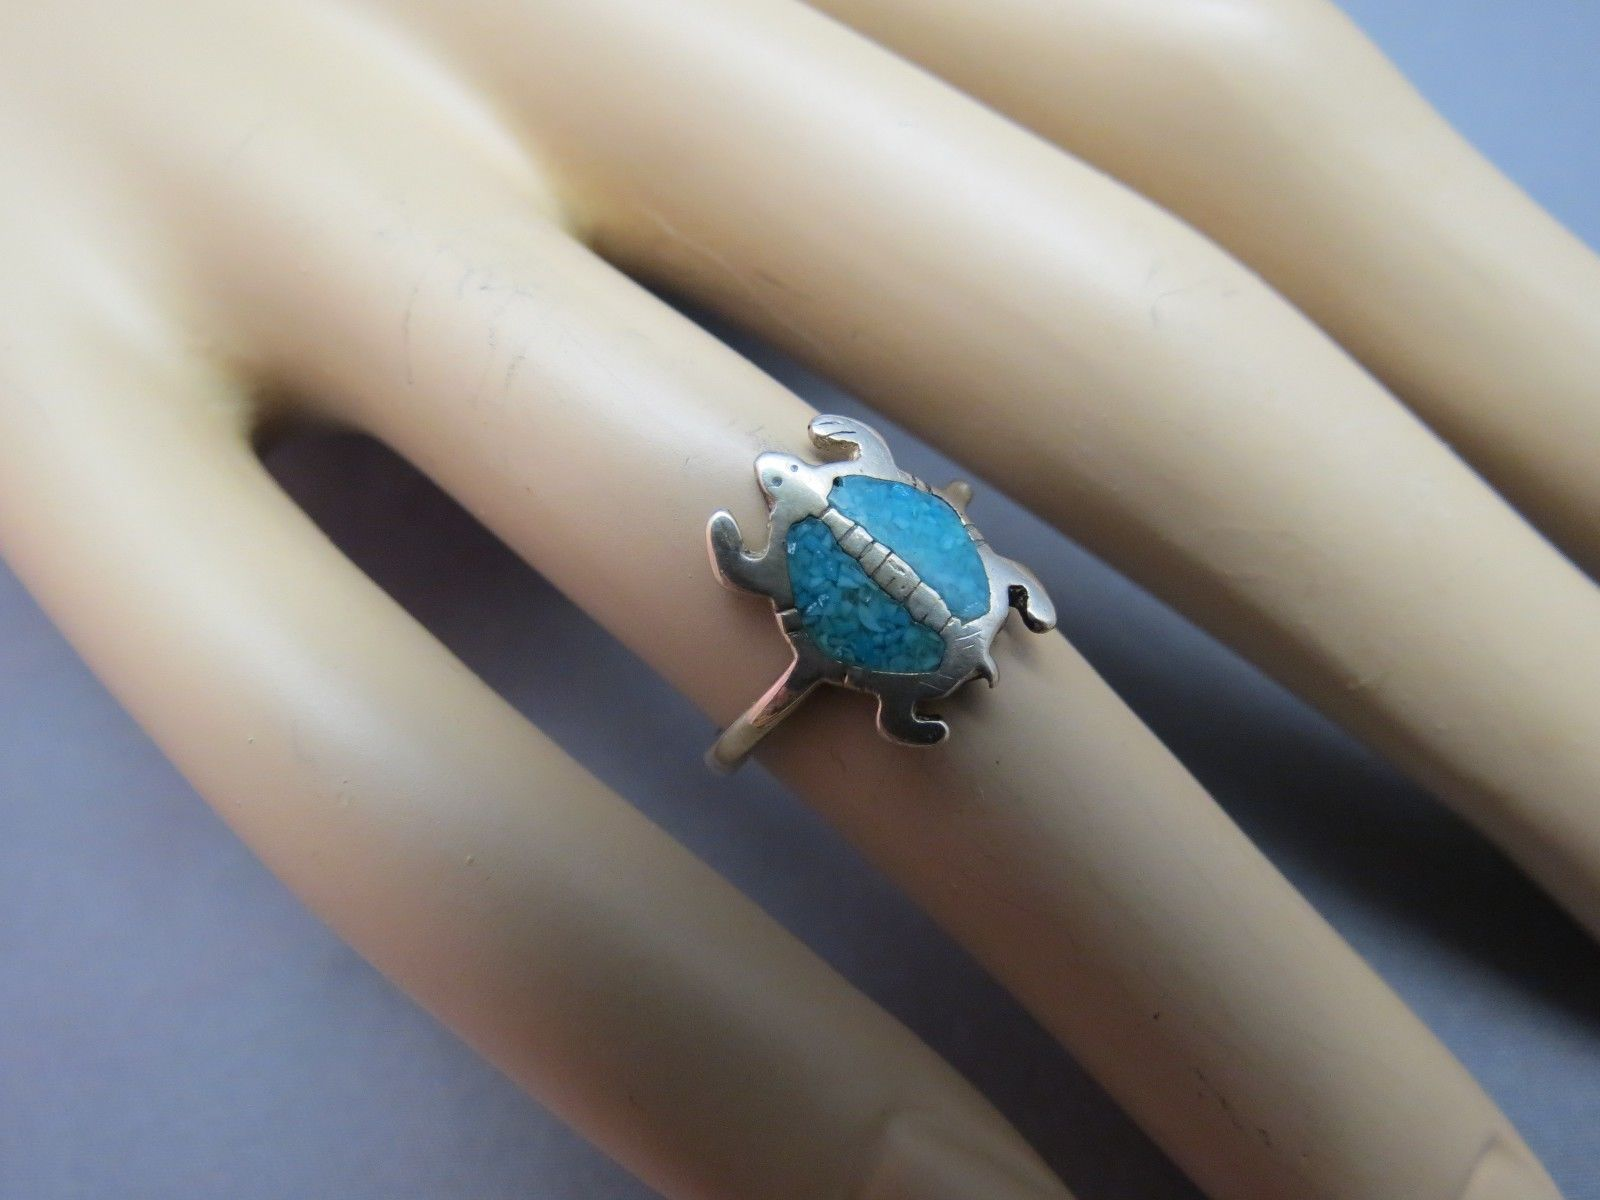 VTG Sterling Silver Turtle Ring Southwest Style Turquoise Stone Size 5 Etched